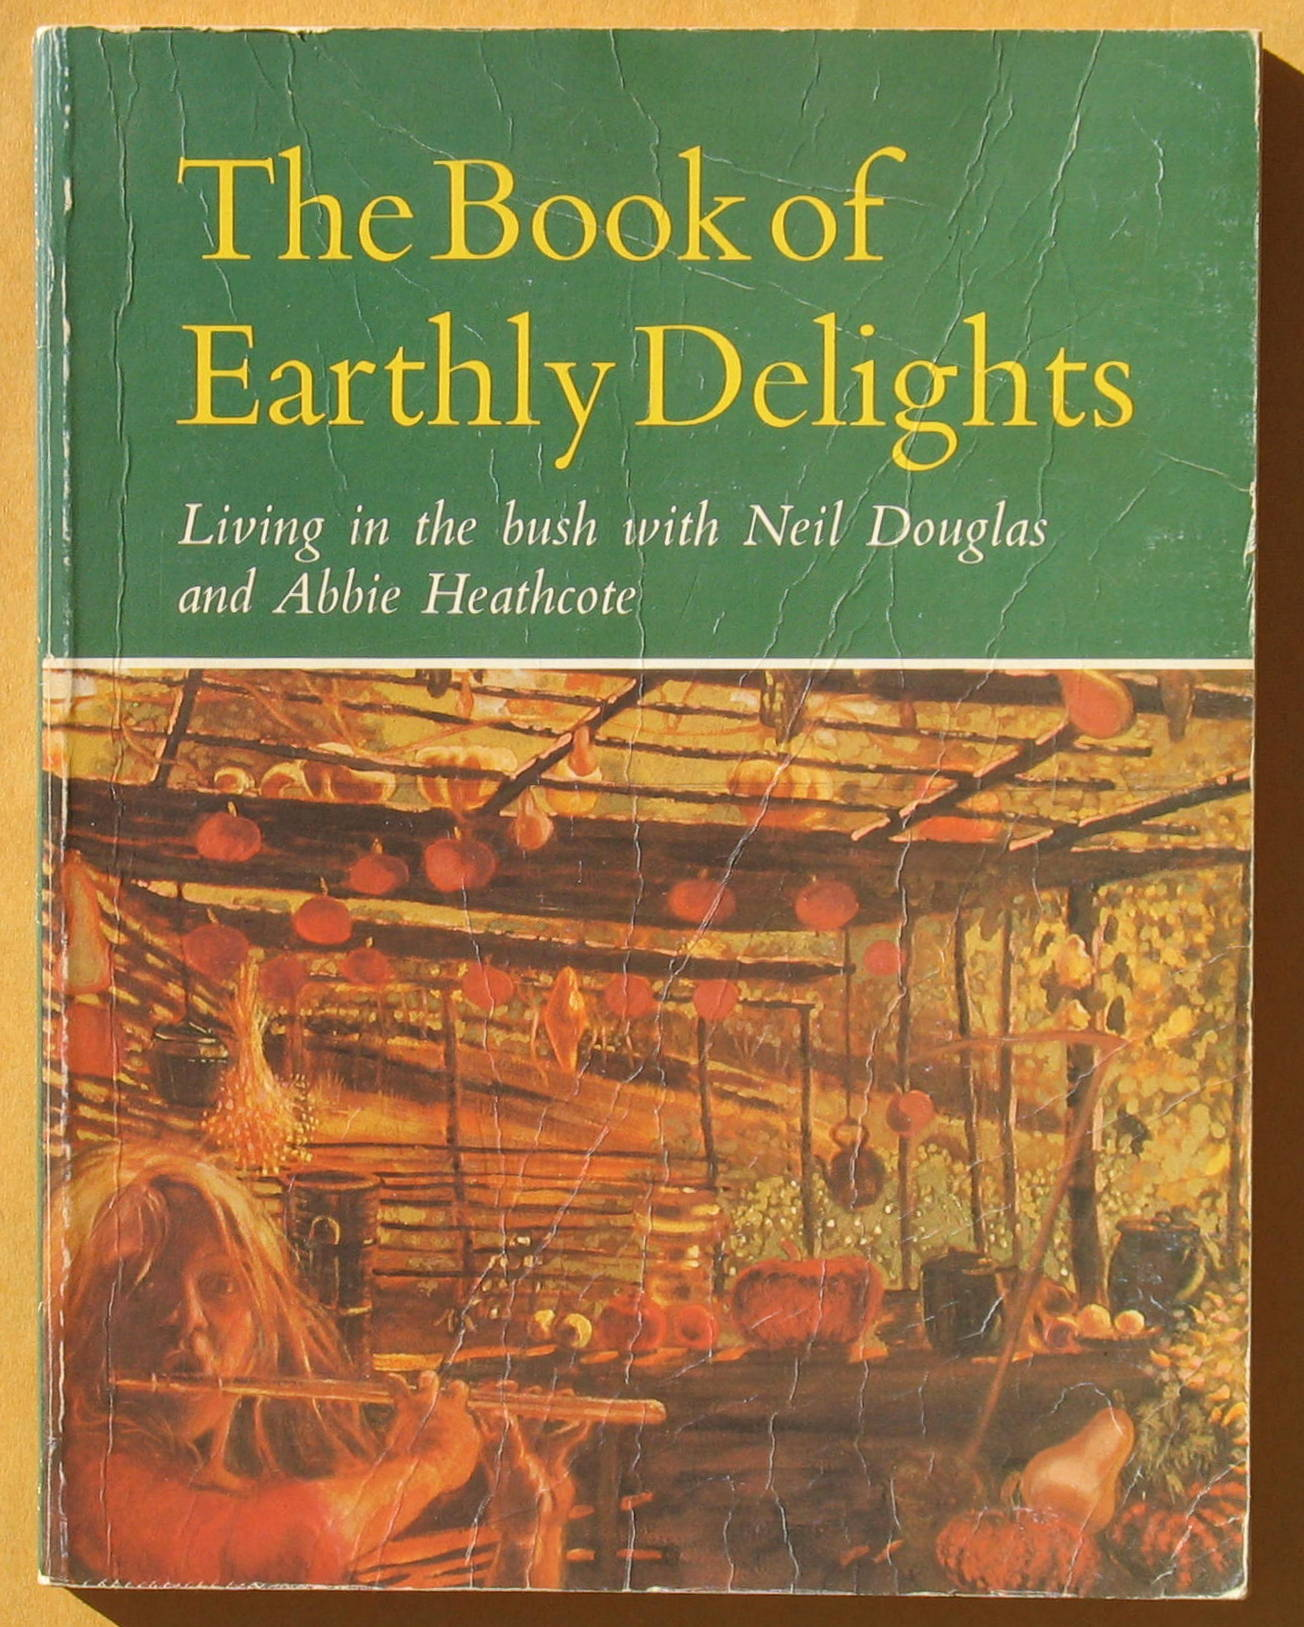 The Book of Earthly Delights: Living in the Bush with Neil Douglas and Abbie Heathcote